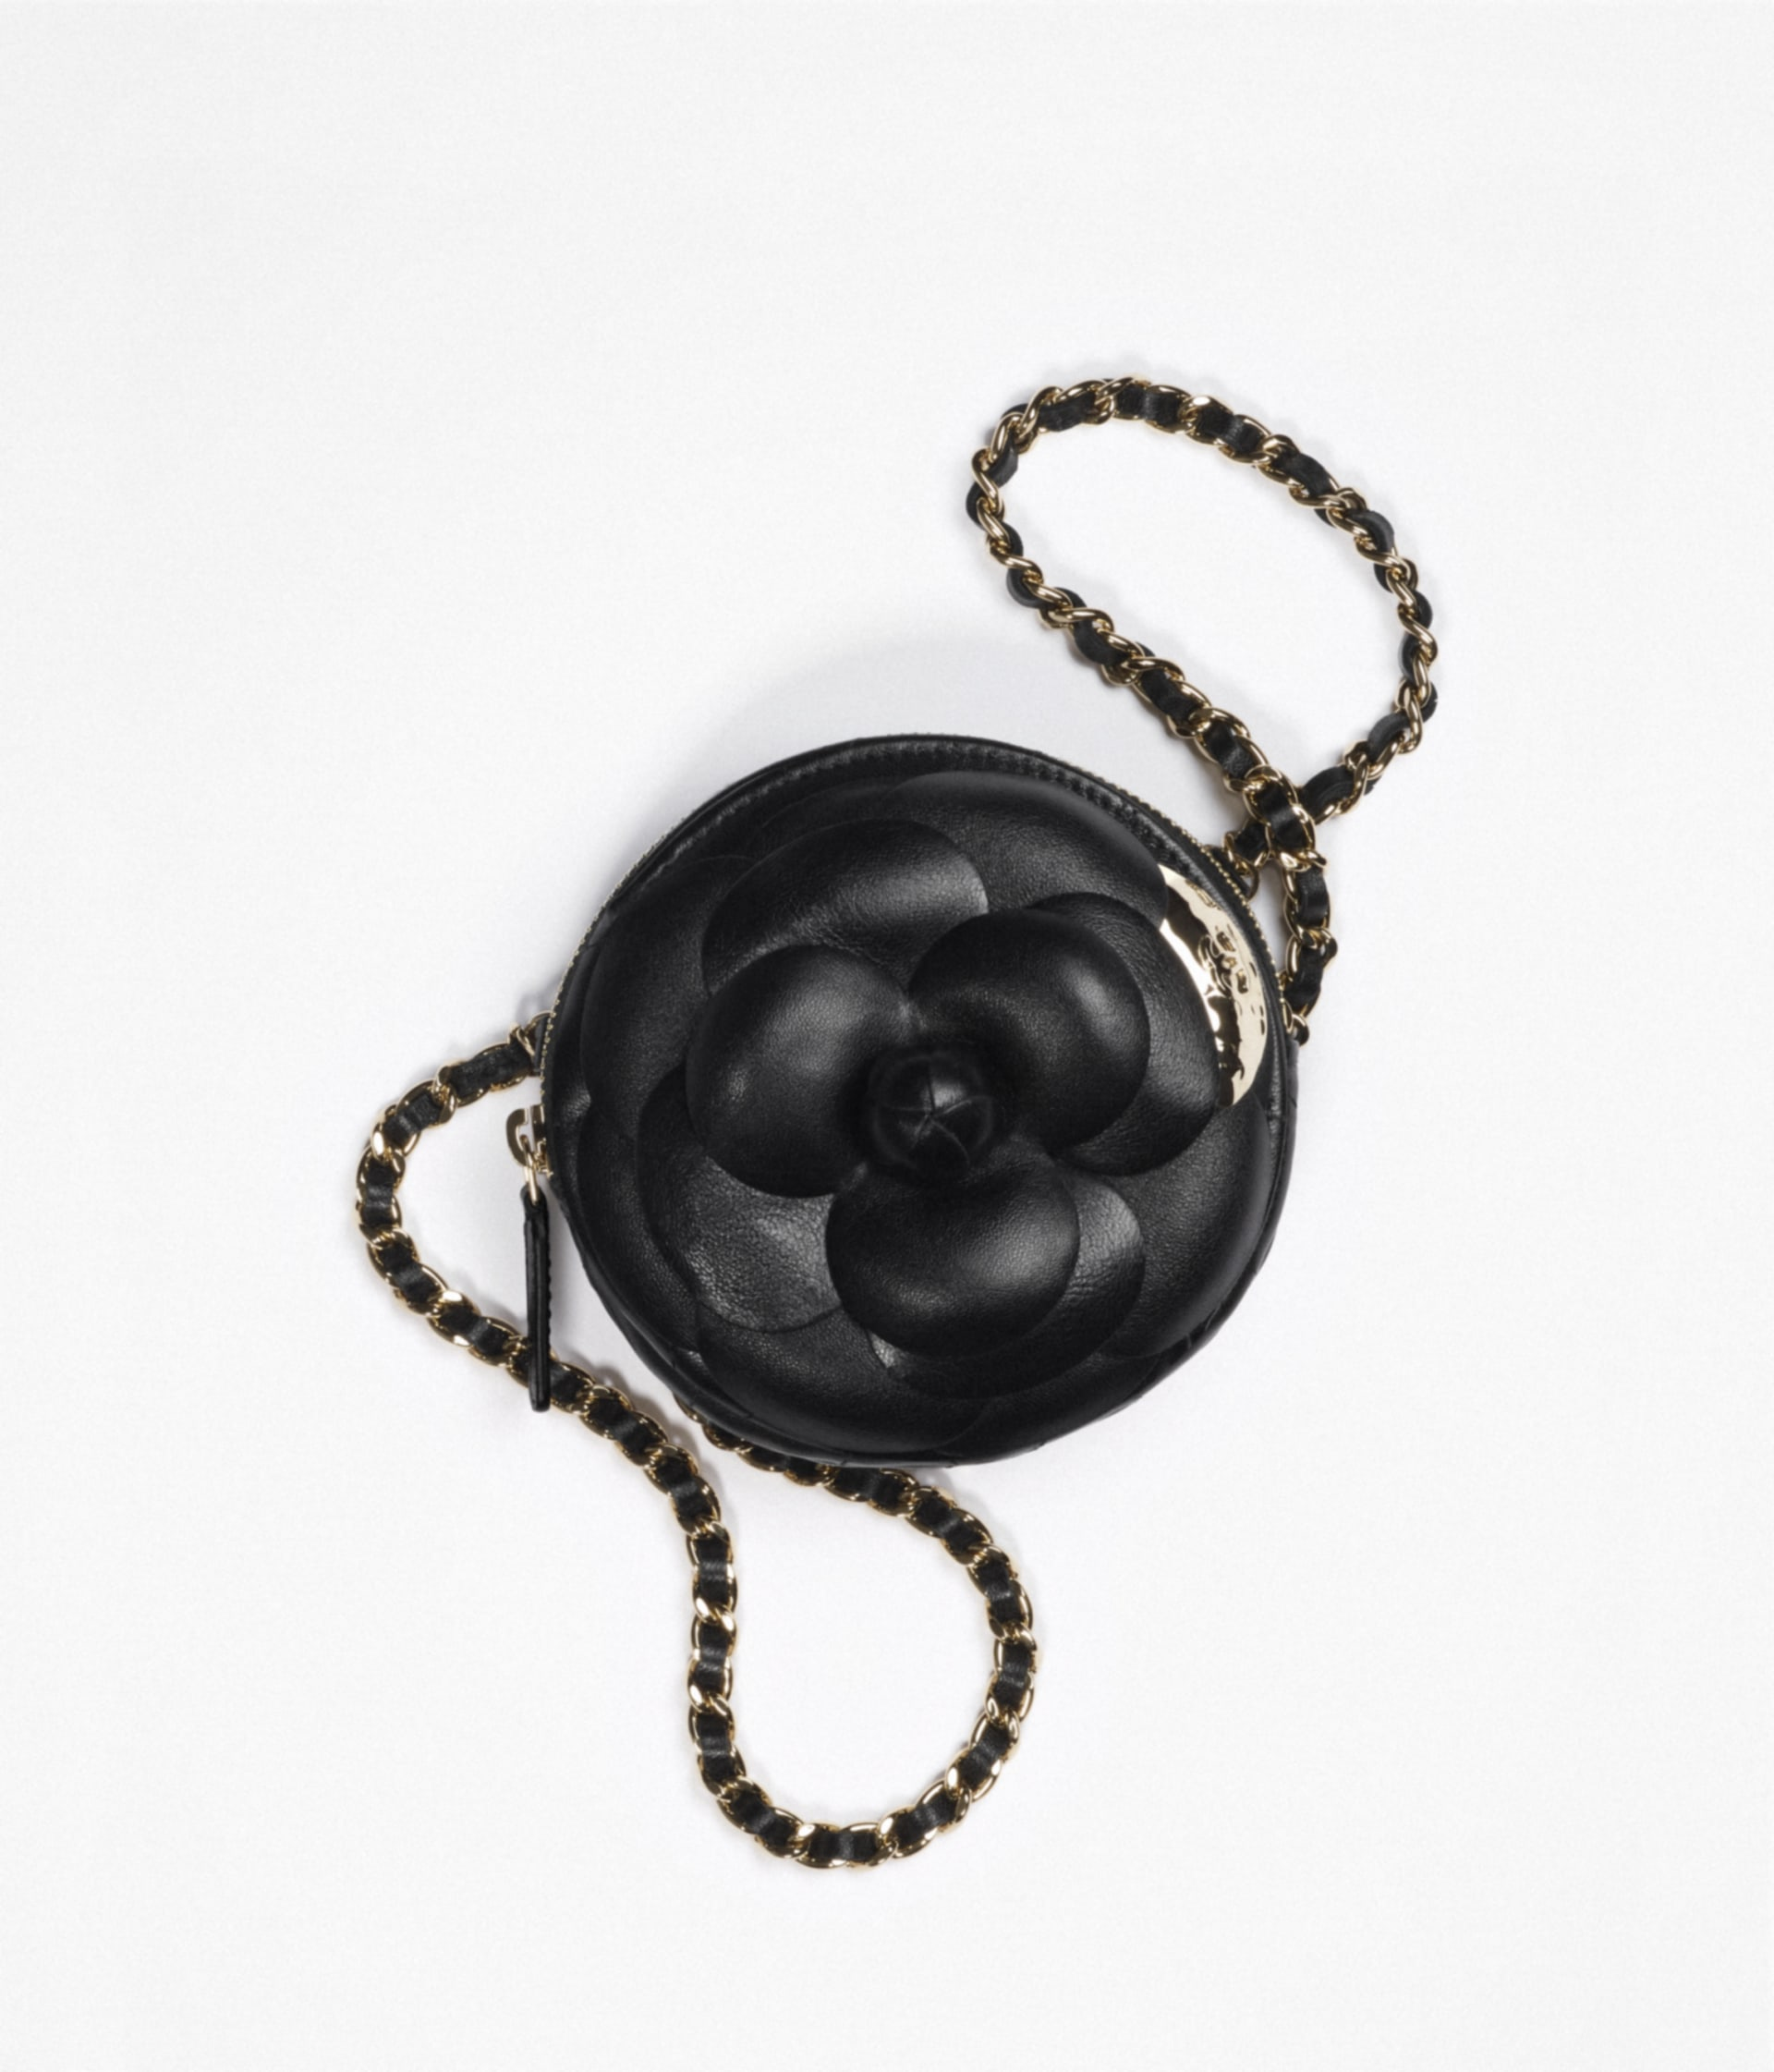 image 1 - Clutch with Chain - Lambskin & Gold Metal  - Black